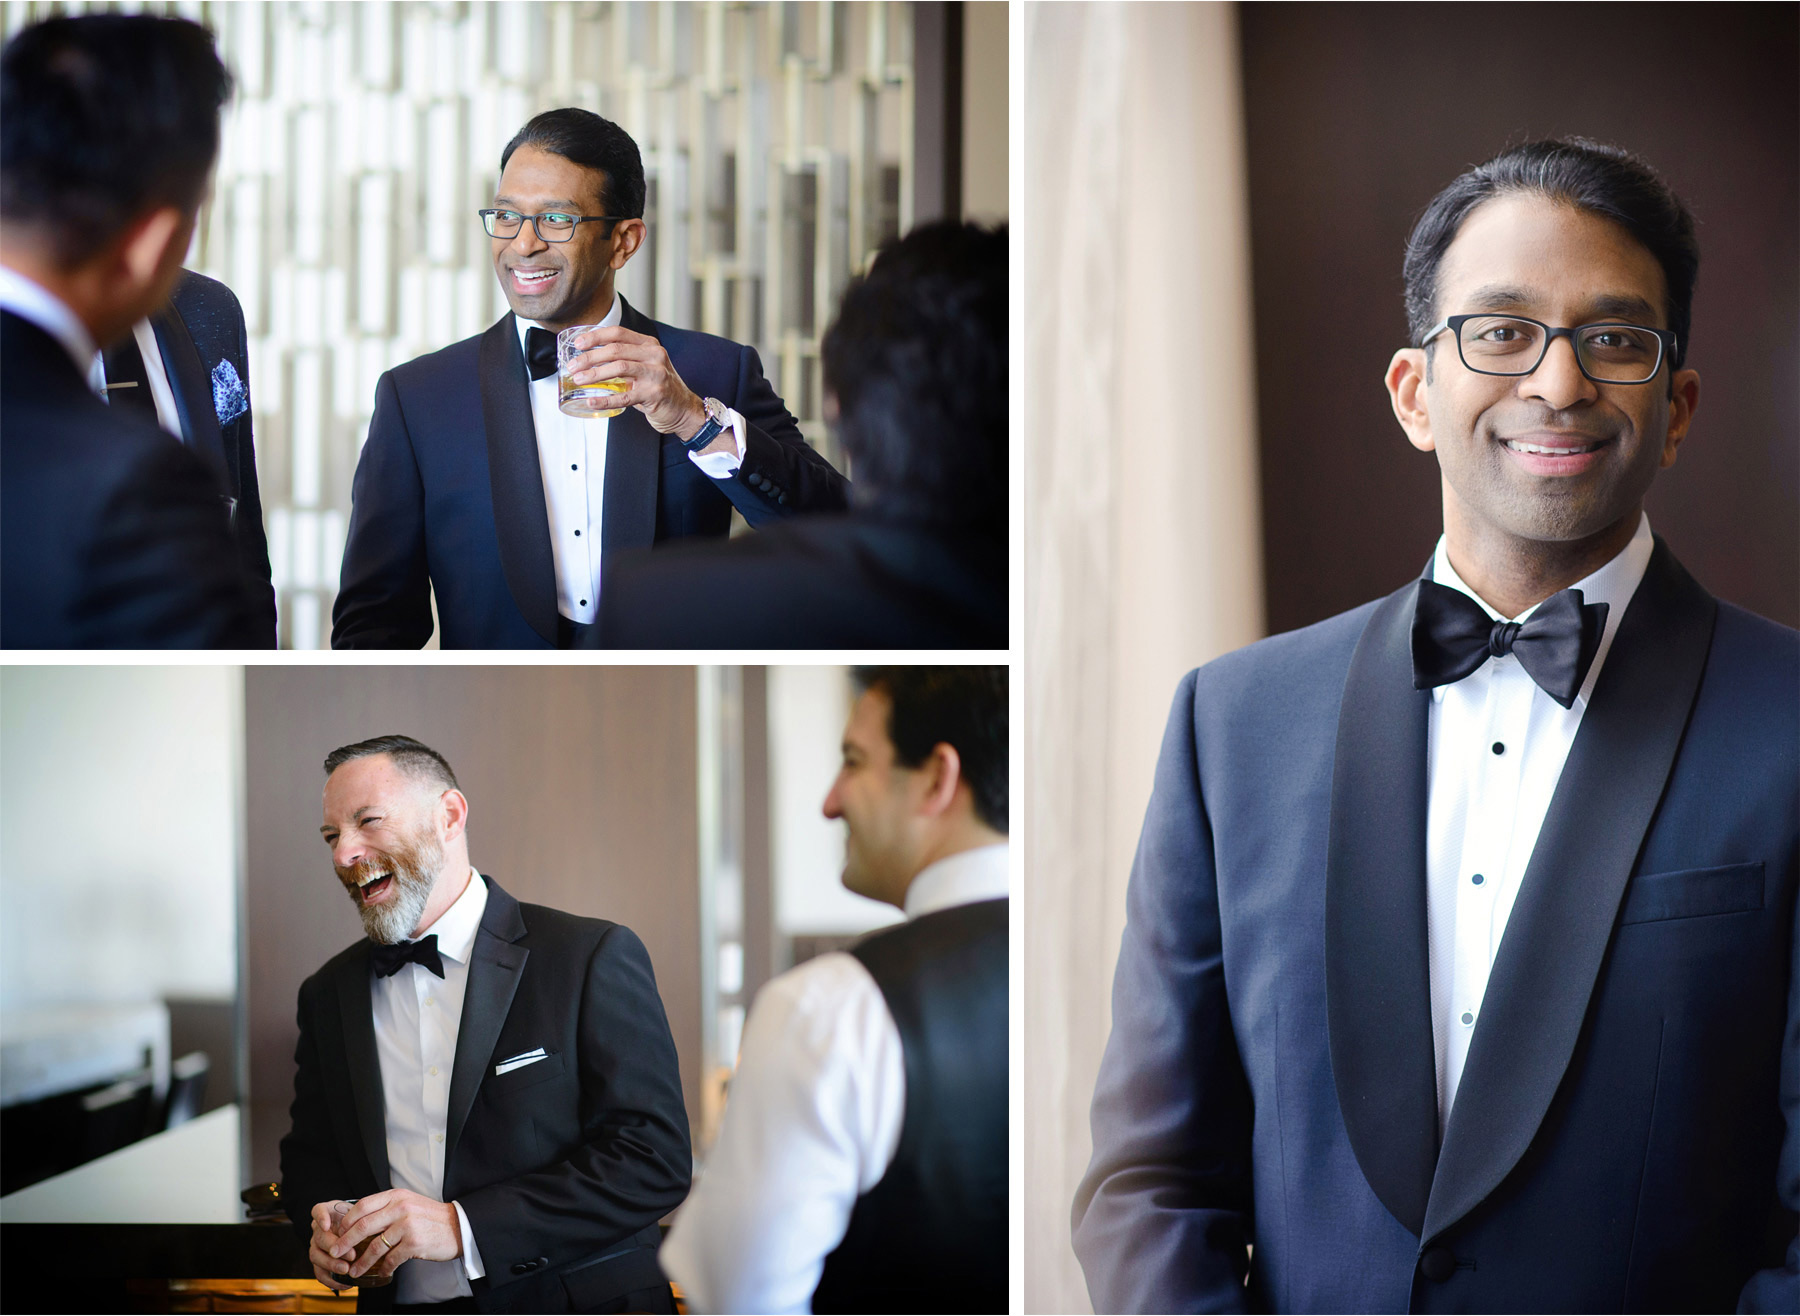 02-Bloomington-Minneapolis-Minnesota-Wedding-Photographer-by-Andrew-Vick-Photography-JW-Marriott-Mall-of-America-MOA-Spring-Groom-Groomsmen-Drinks-Bar-Hotel-Vintage-Rachel-and-Venu.jpg